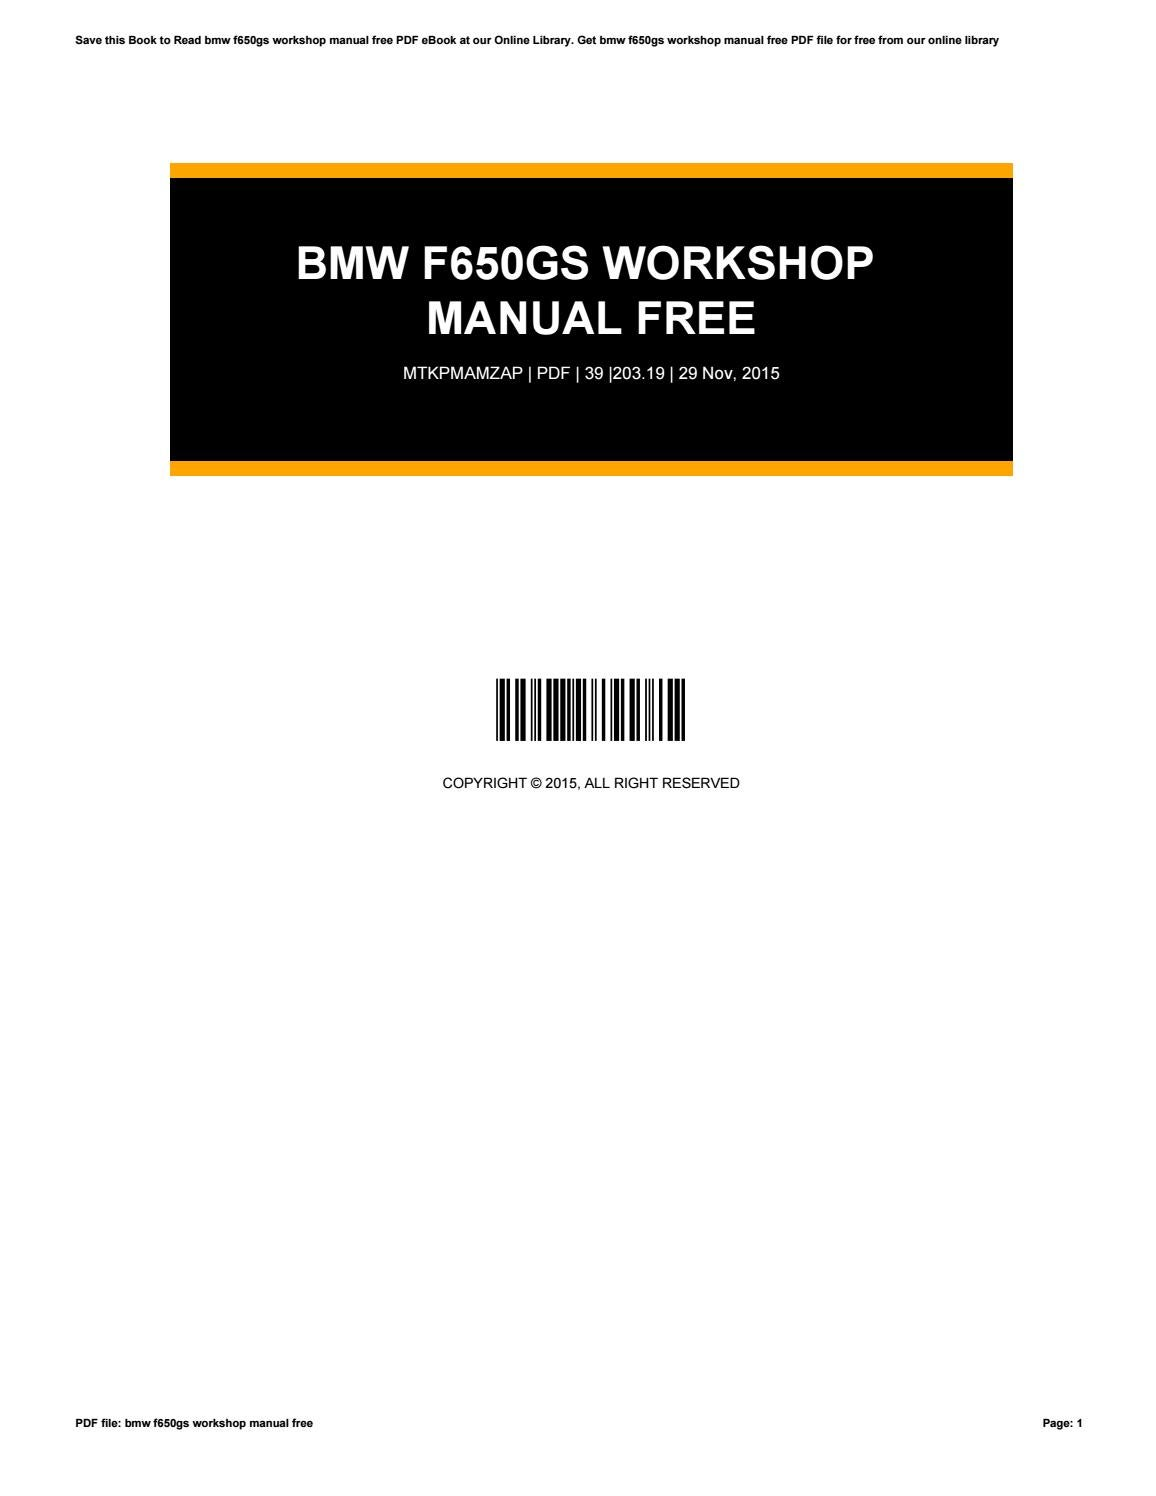 Bmw f650gs owners manual free download youtube.